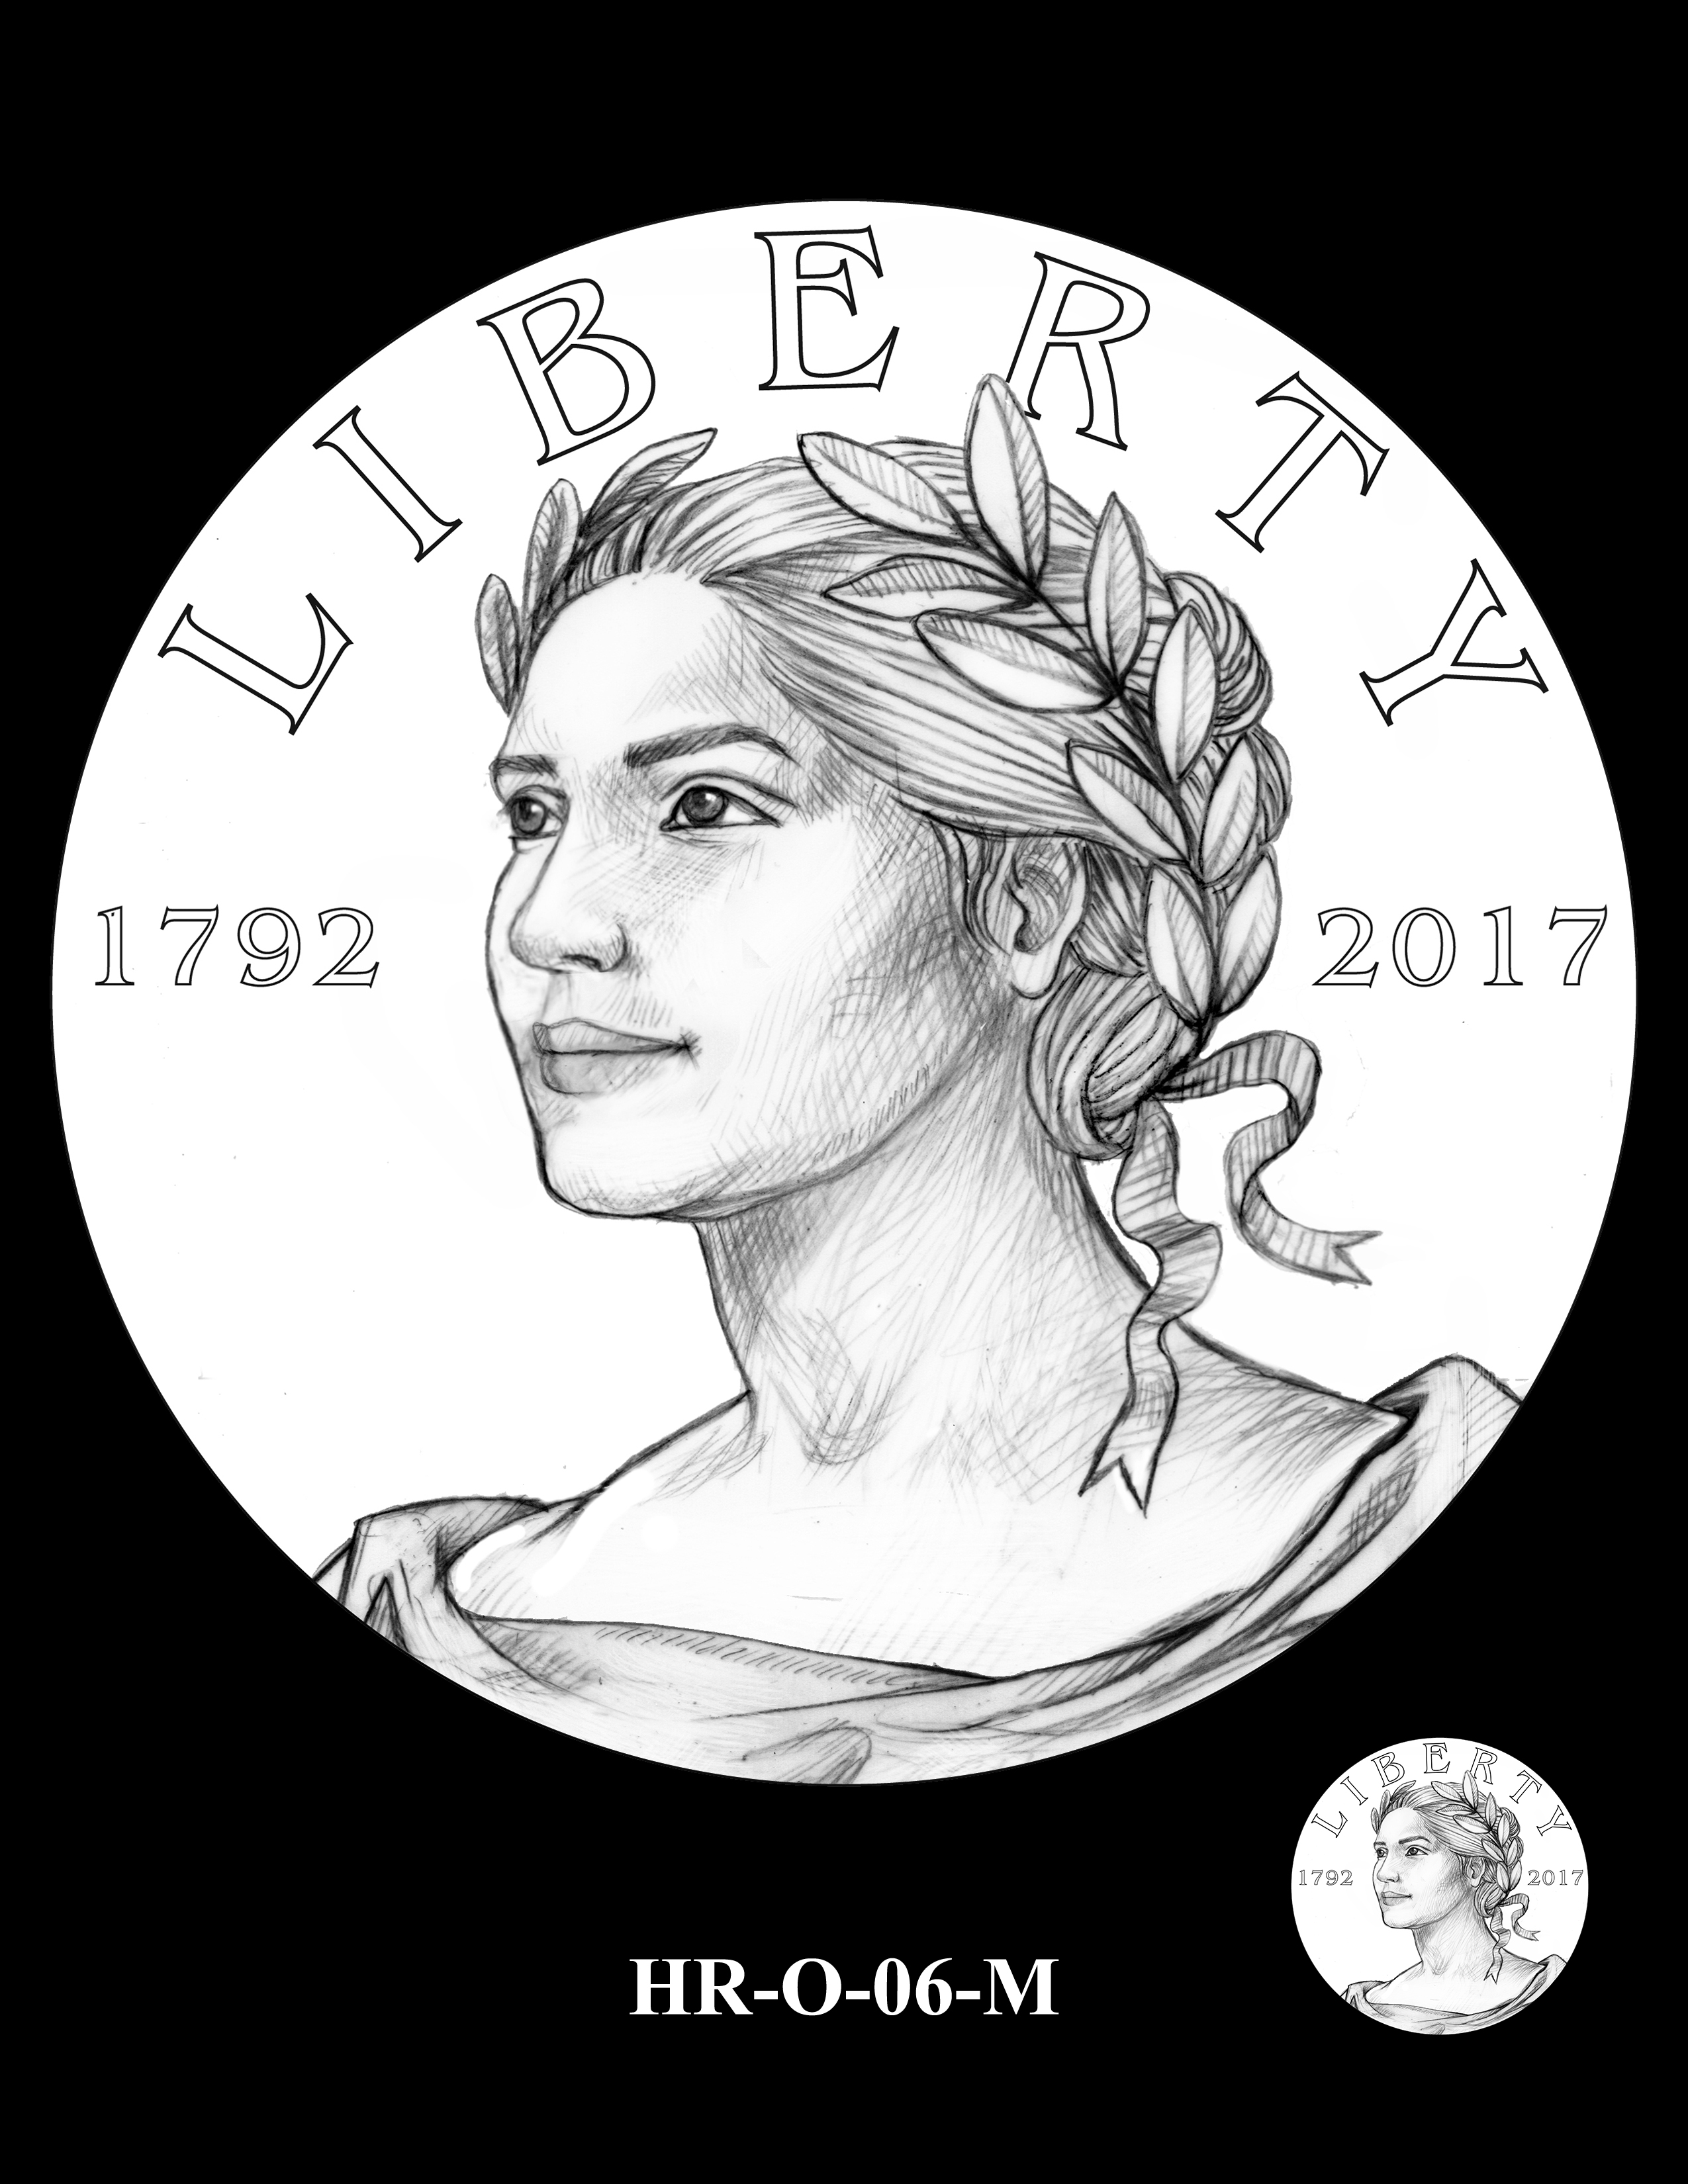 HR-O-06-M - 2017 American Liberty High Relief Gold Coin and Silver Medal Program